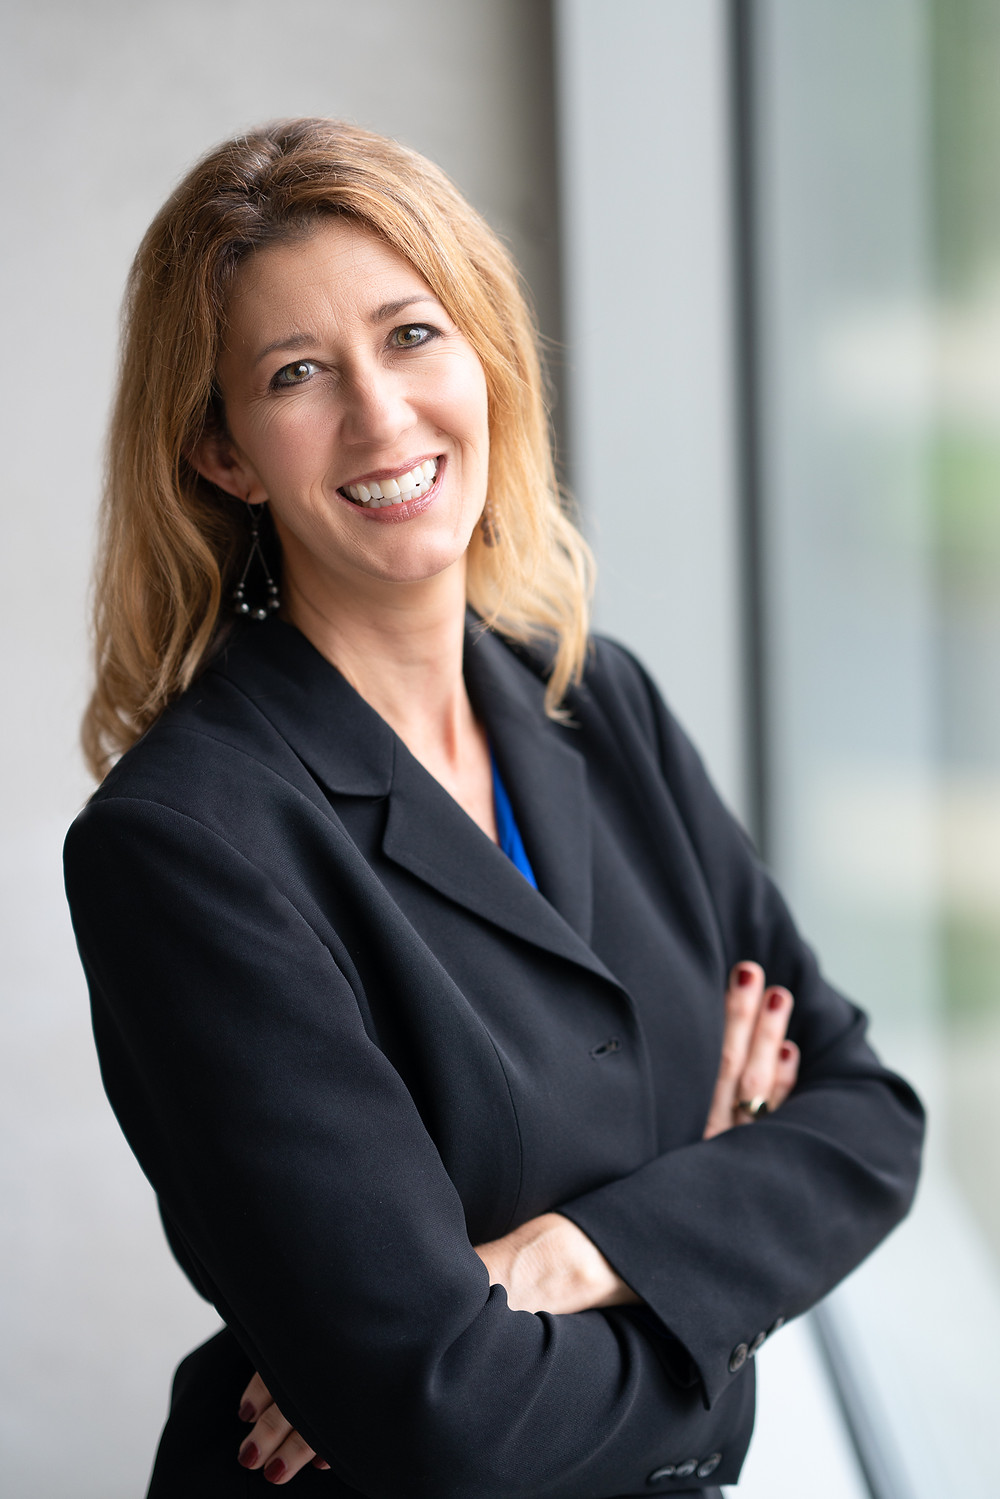 A woman wearing a business suit smiles for commercial headshot in Kalamazoo, Michigan